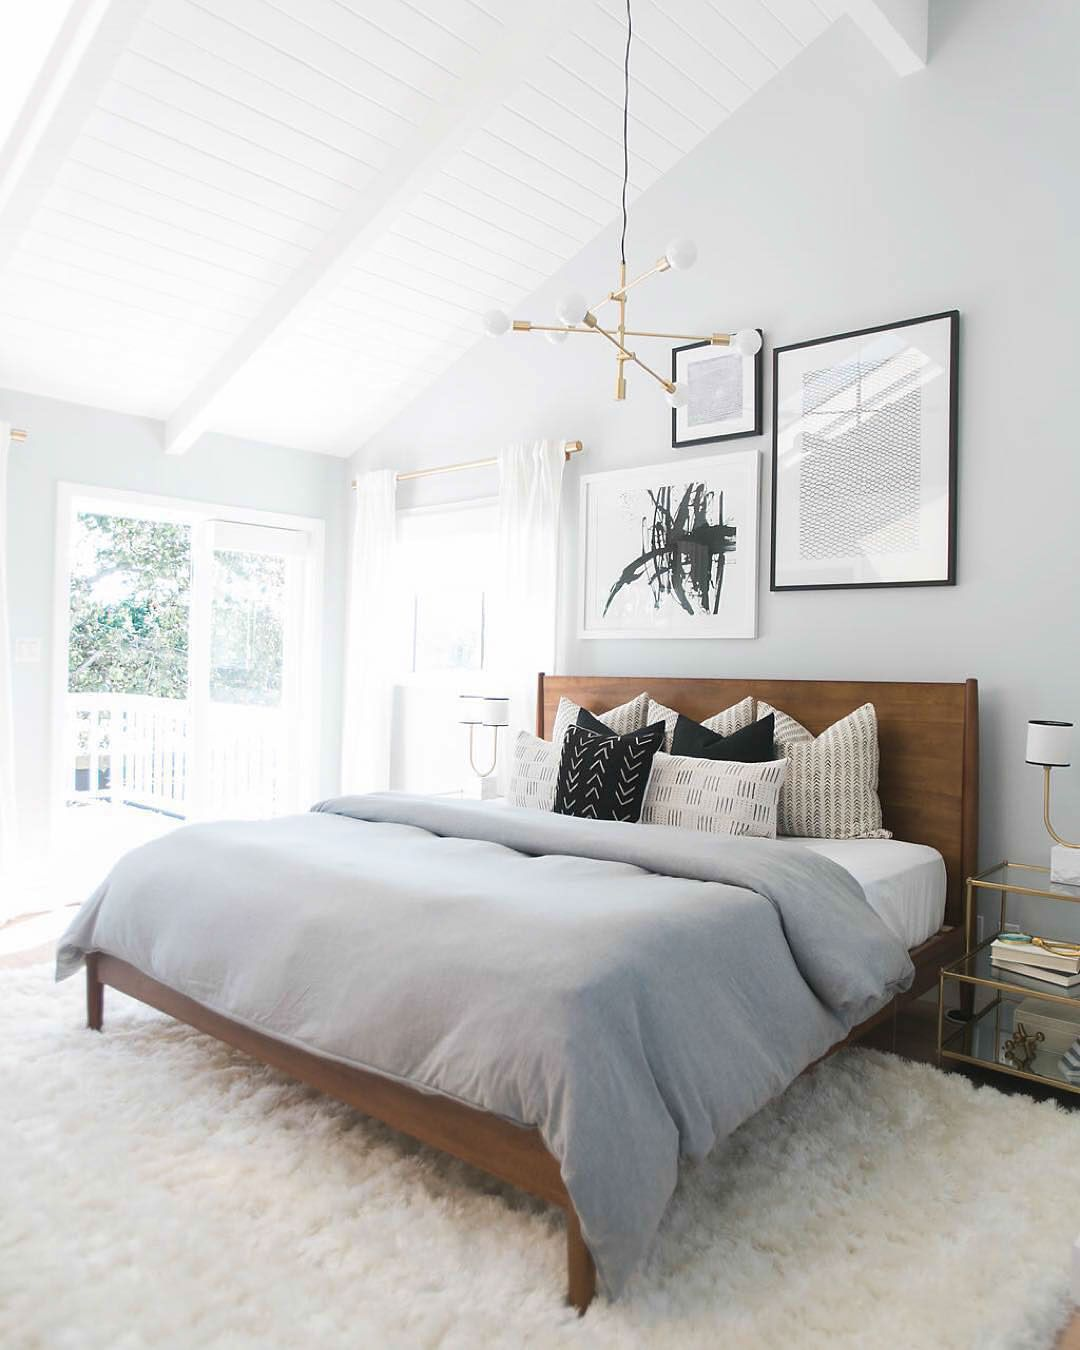 Make Your Bedroom Beautiful Furniture Unique Lighting And More From West Elm Get Inspired